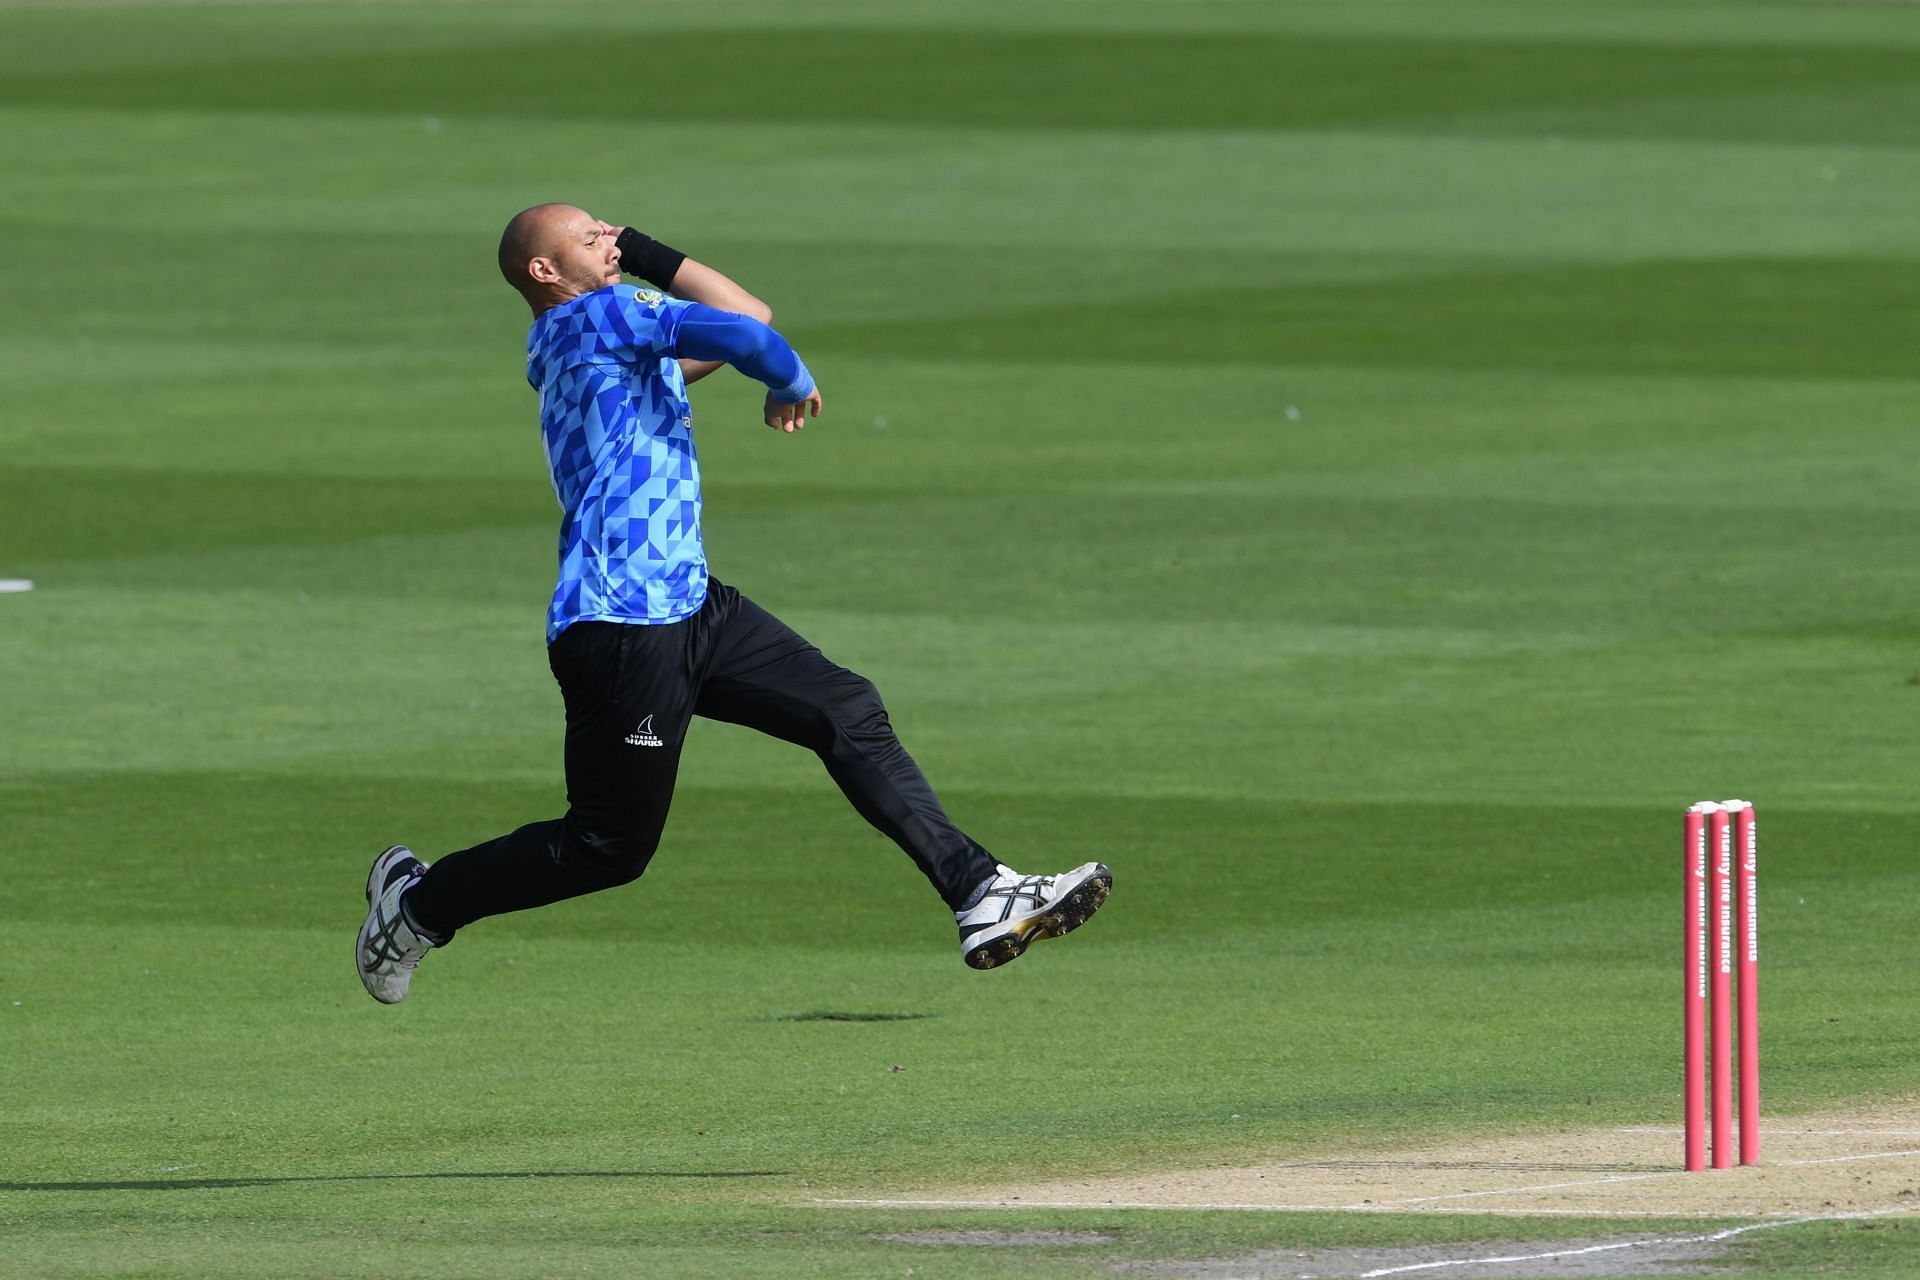 Tymal Mills can be the match-winner for England in T20 World Cup